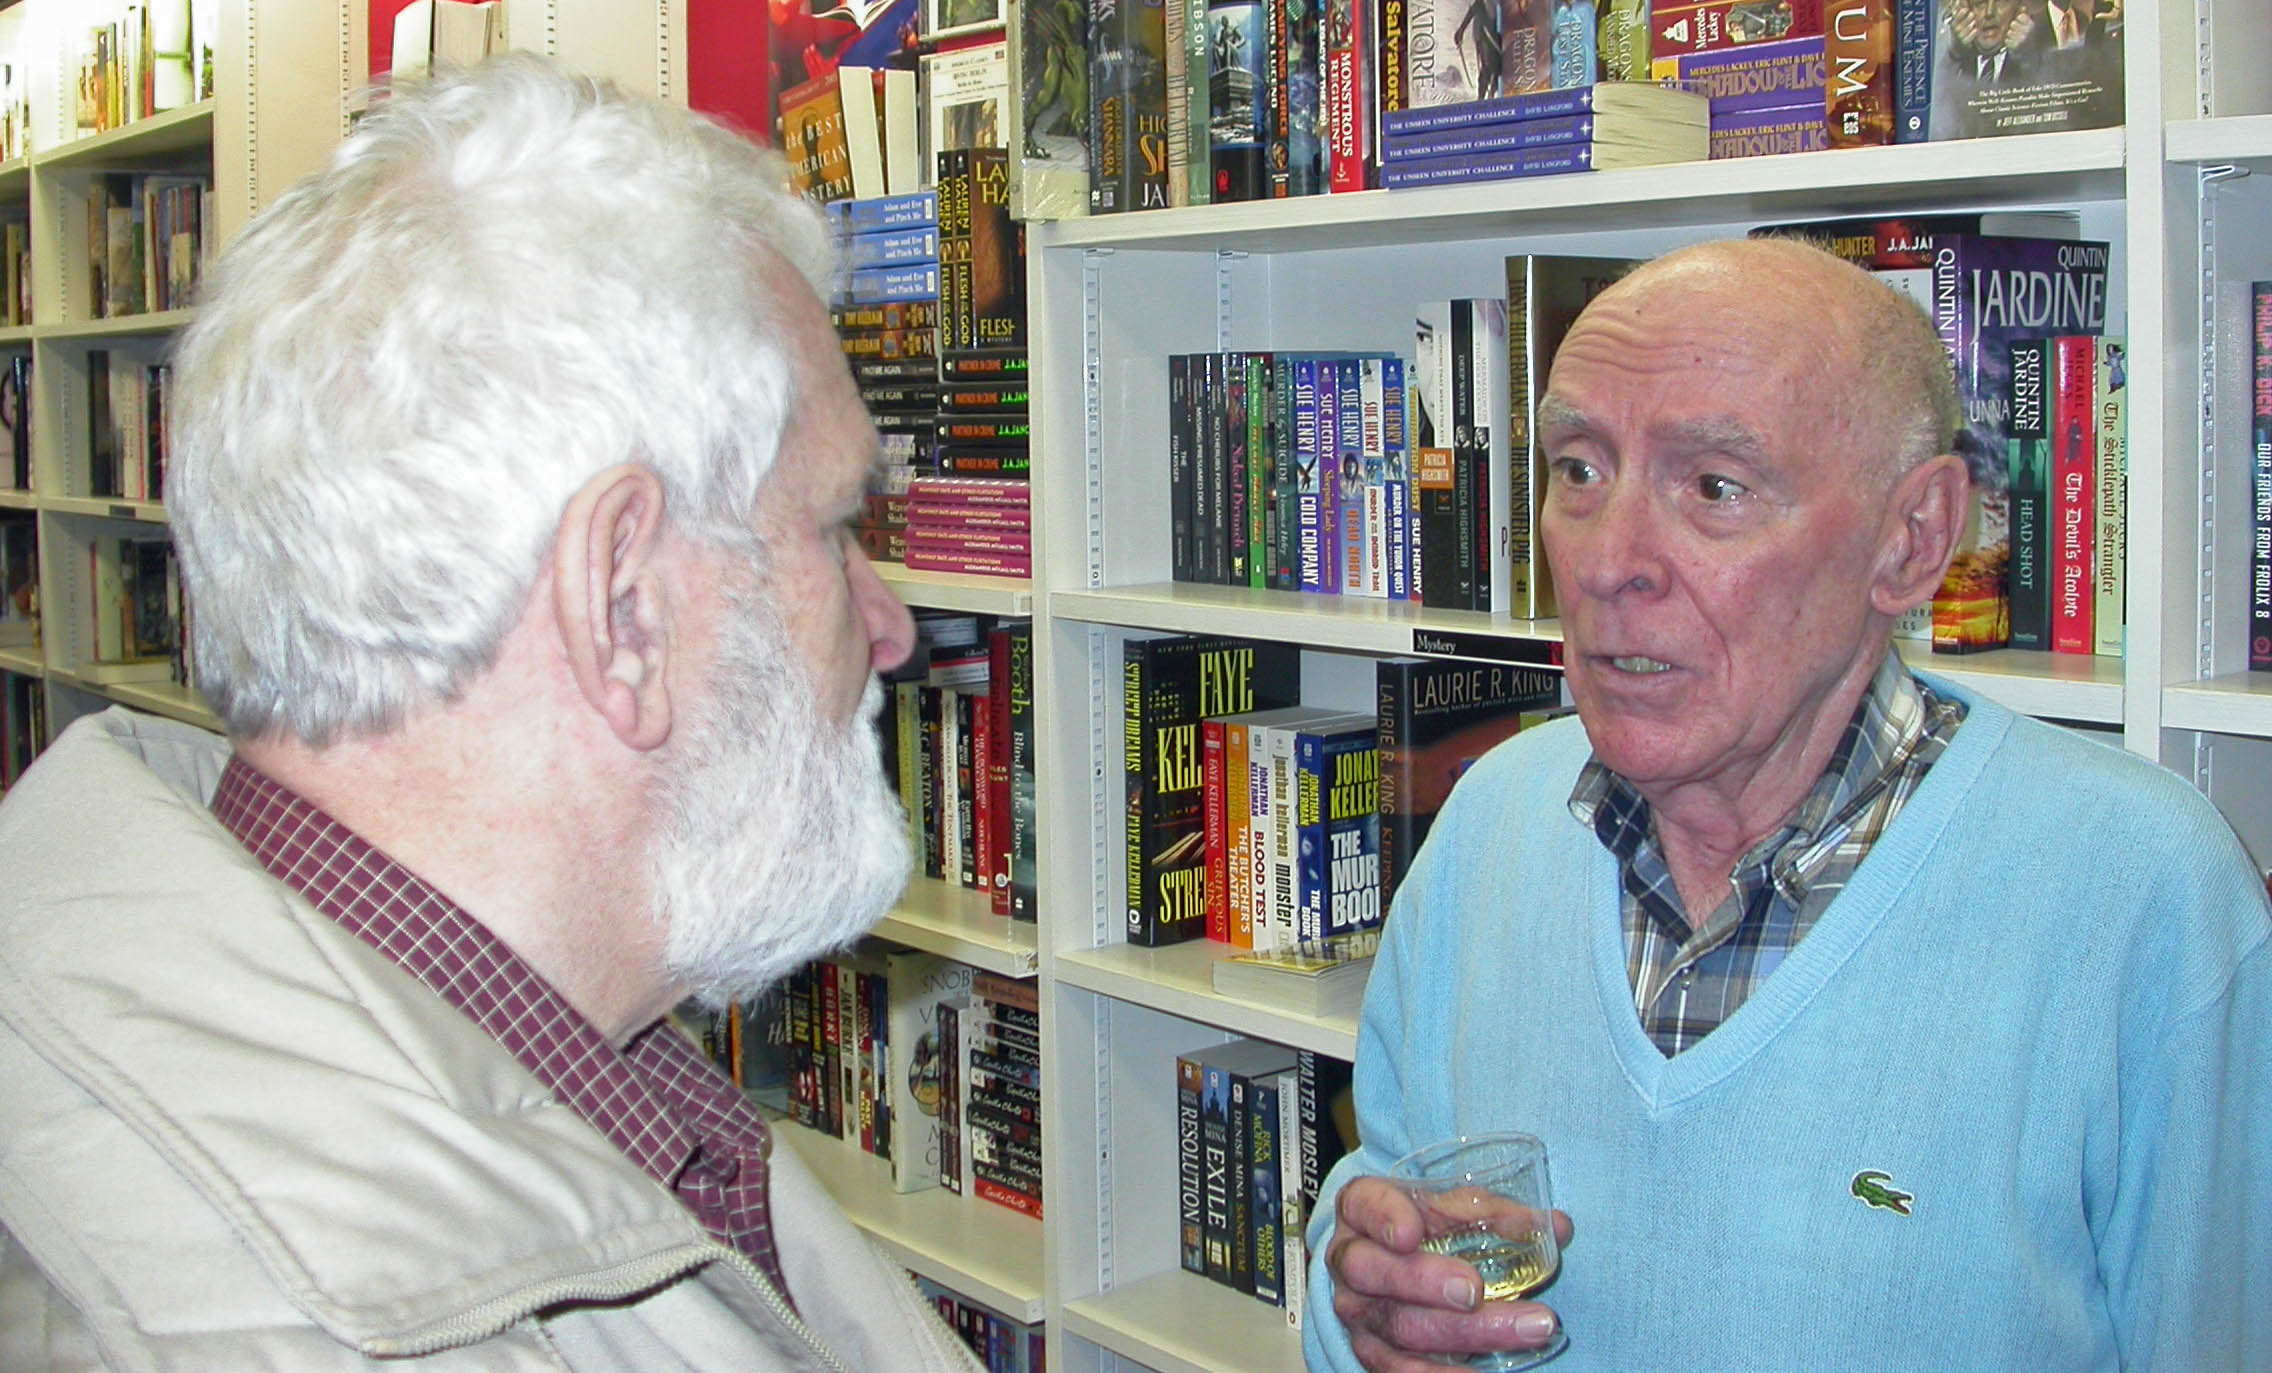 Our dads at my first book launch